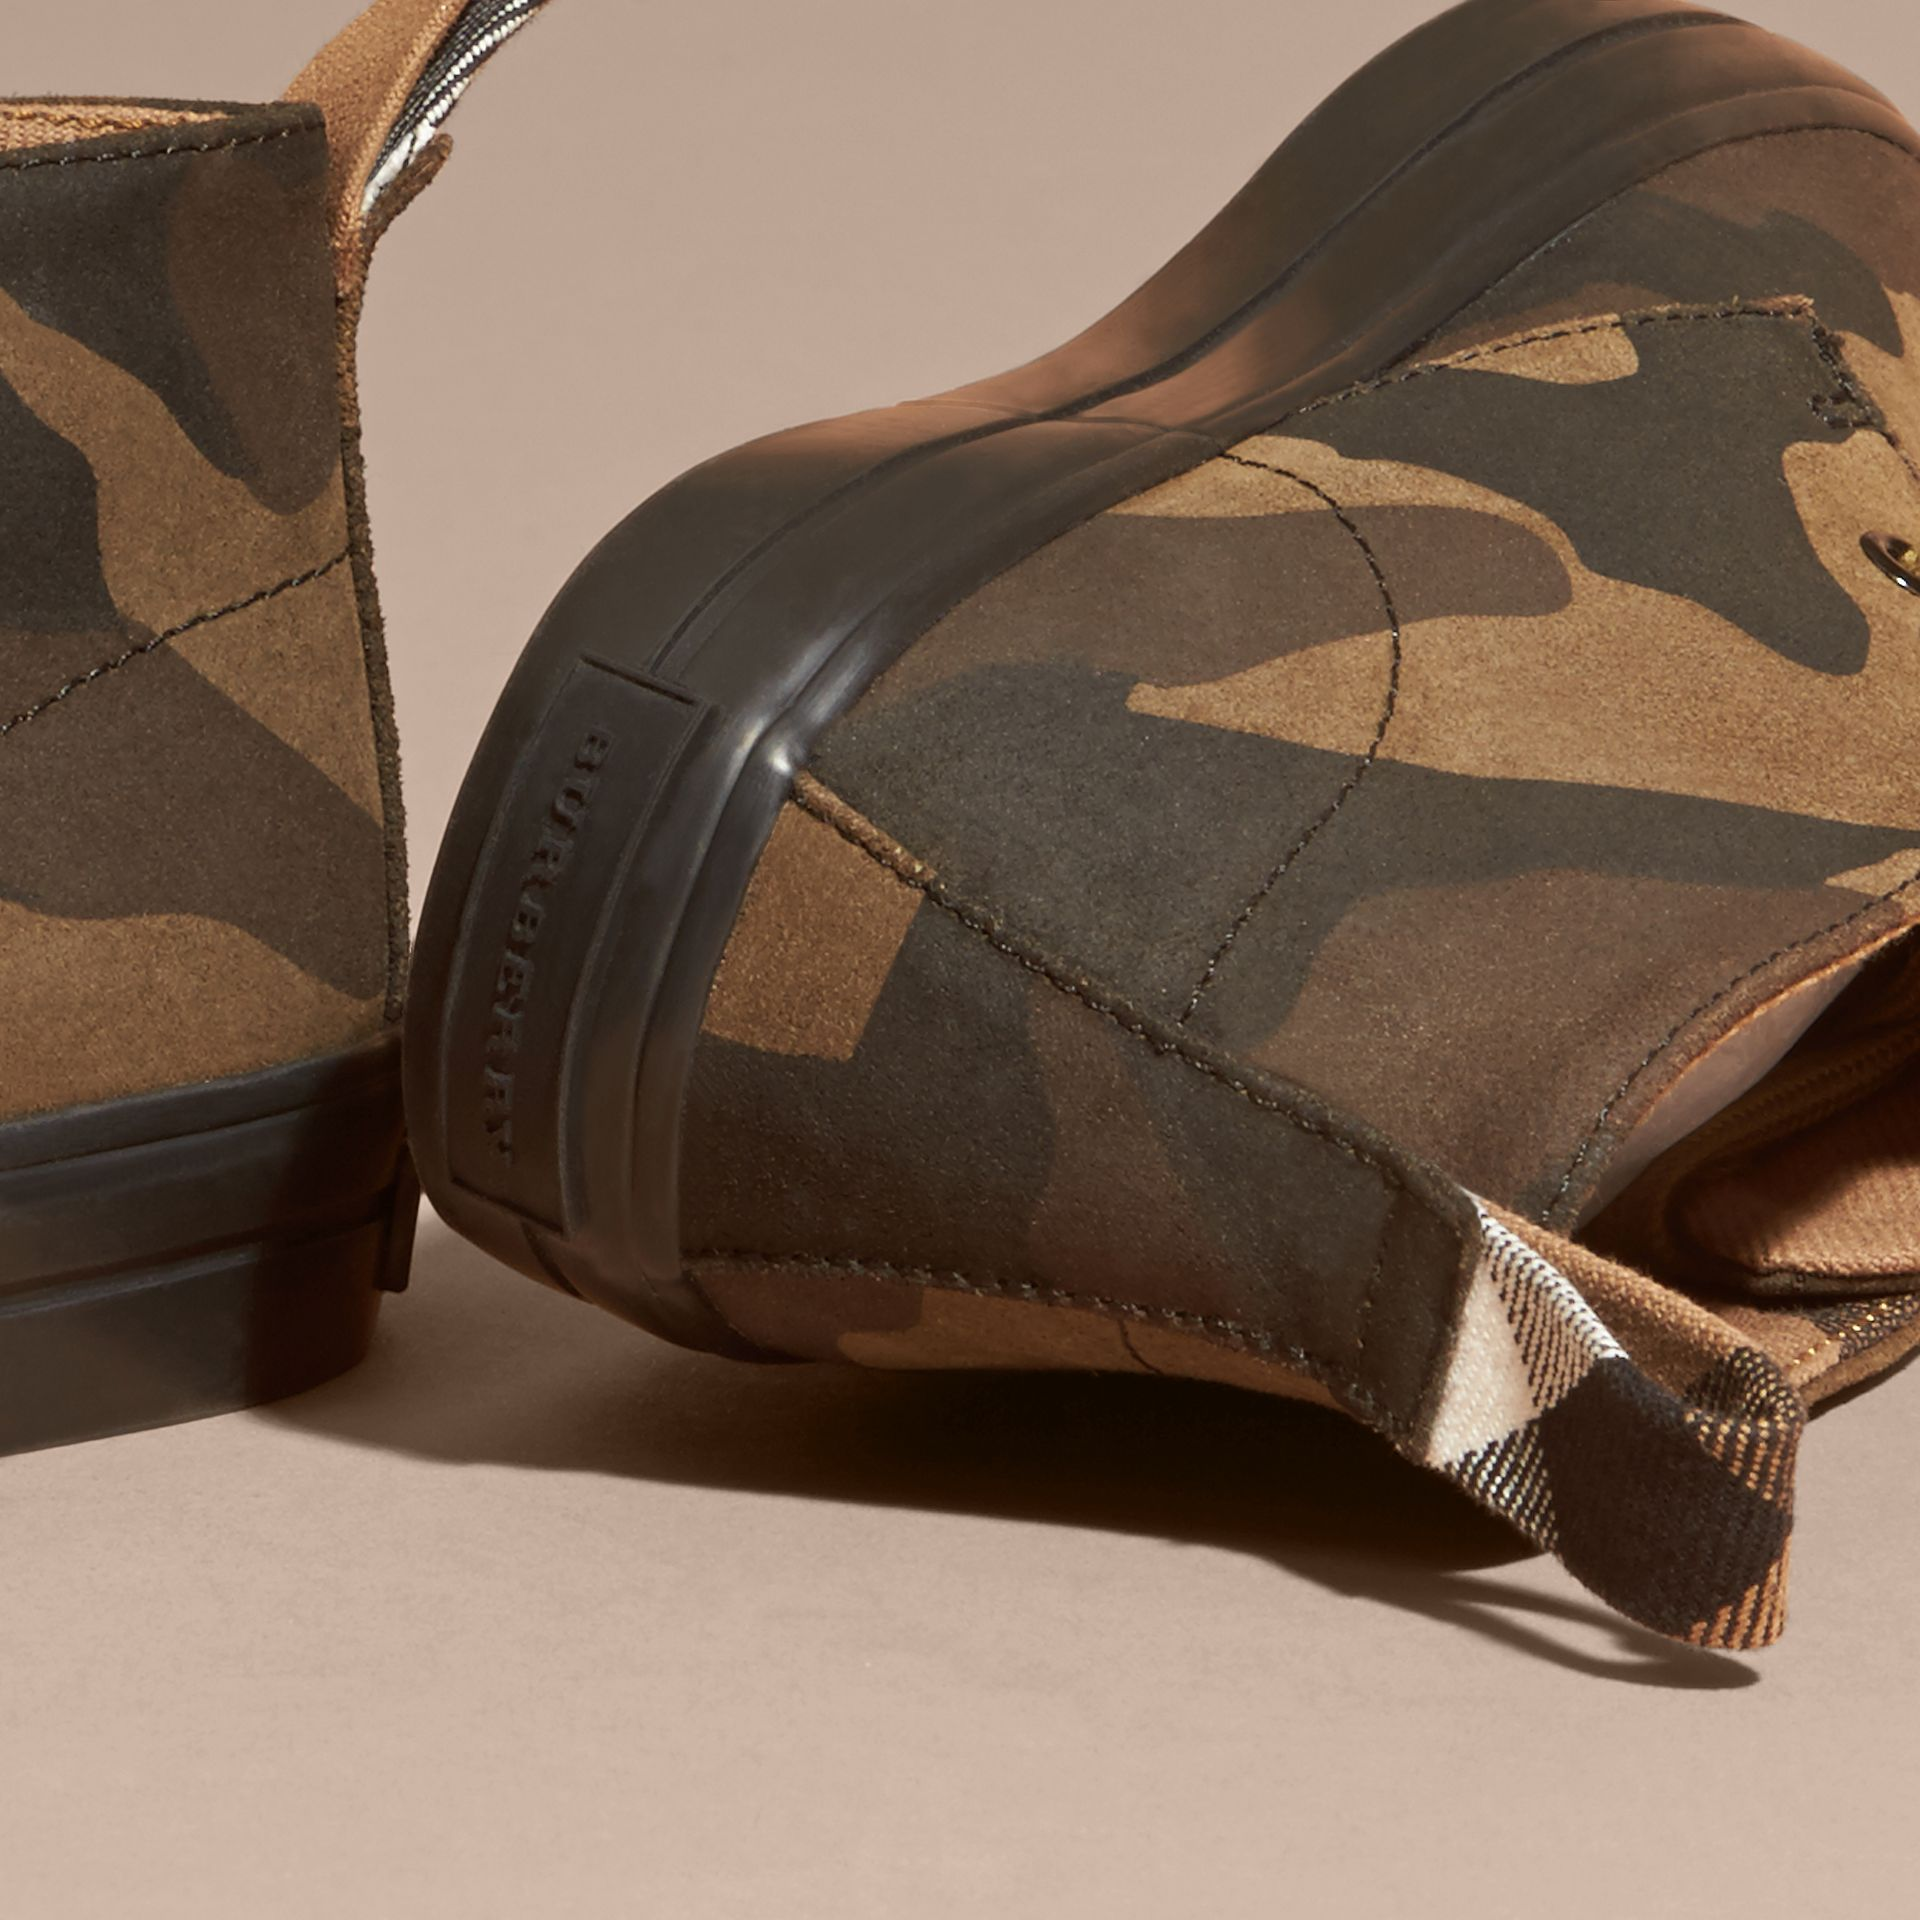 Dark green ochre Camouflage Print Suede Lace-up Desert Boots - gallery image 3